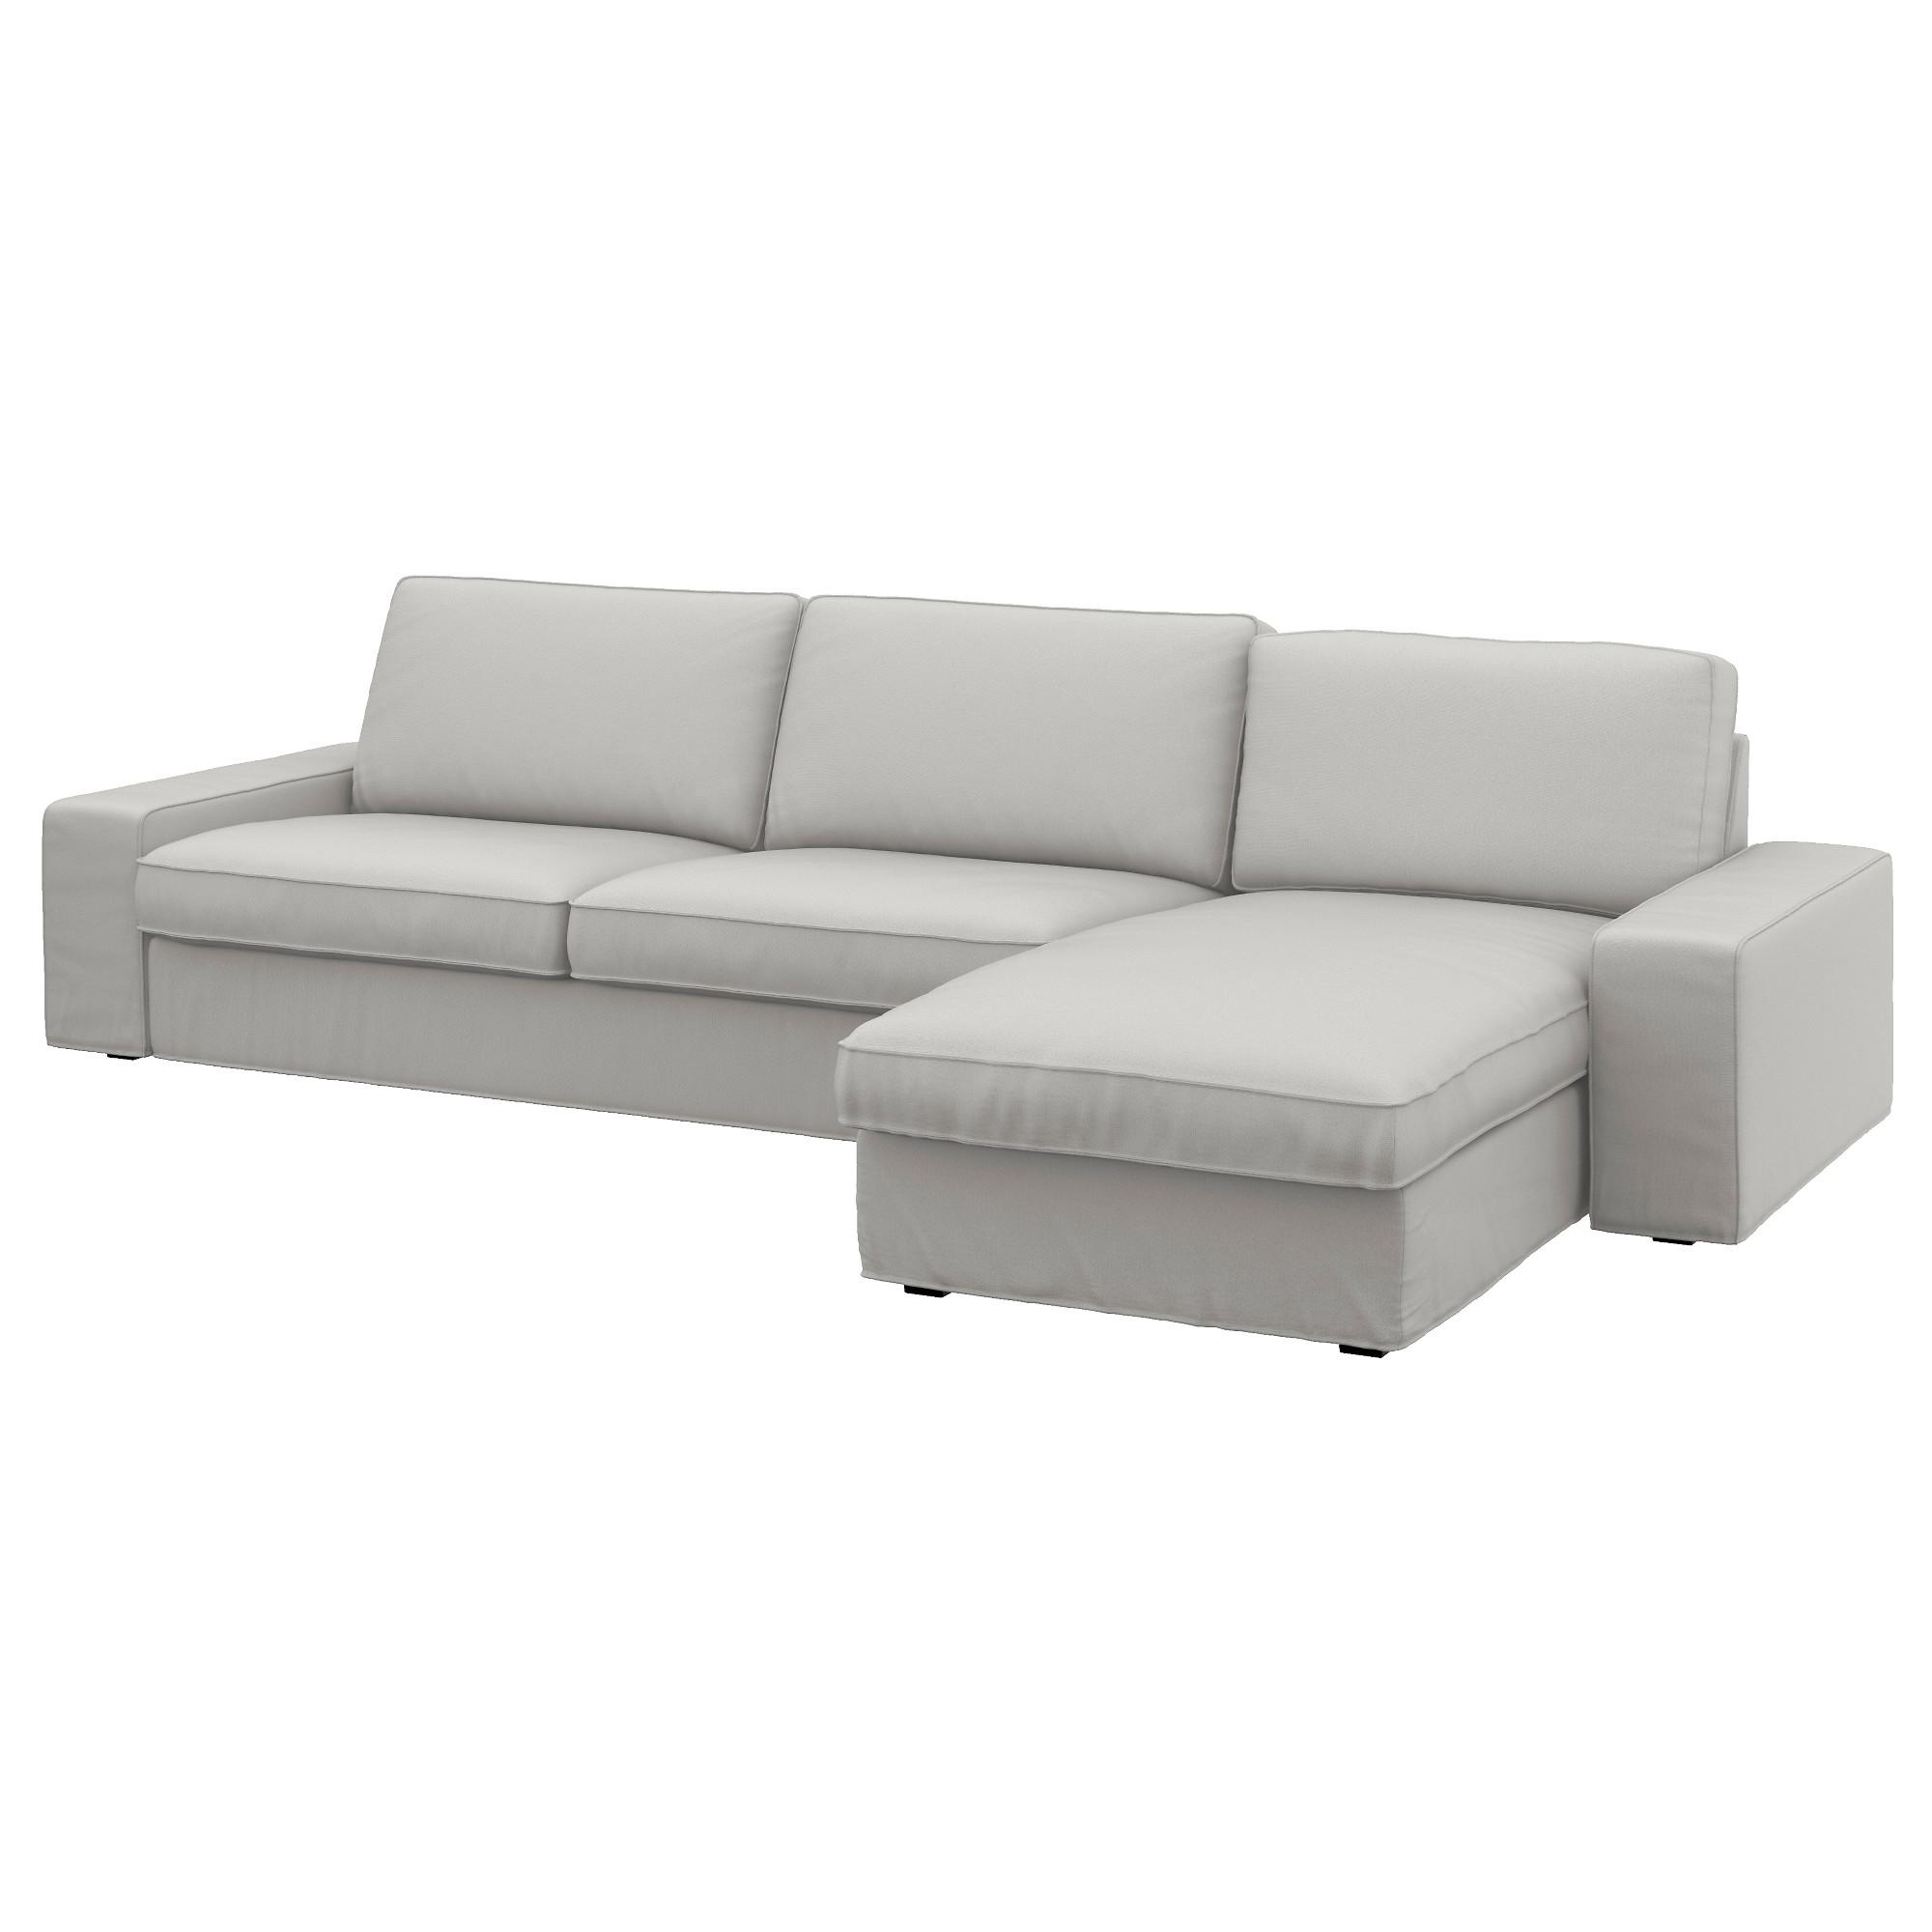 Kivik 4 Seat Sofa With Chaise Longue/ramna Light Grey – Ikea Within Ikea Chaise Lounge Sofa (View 3 of 20)